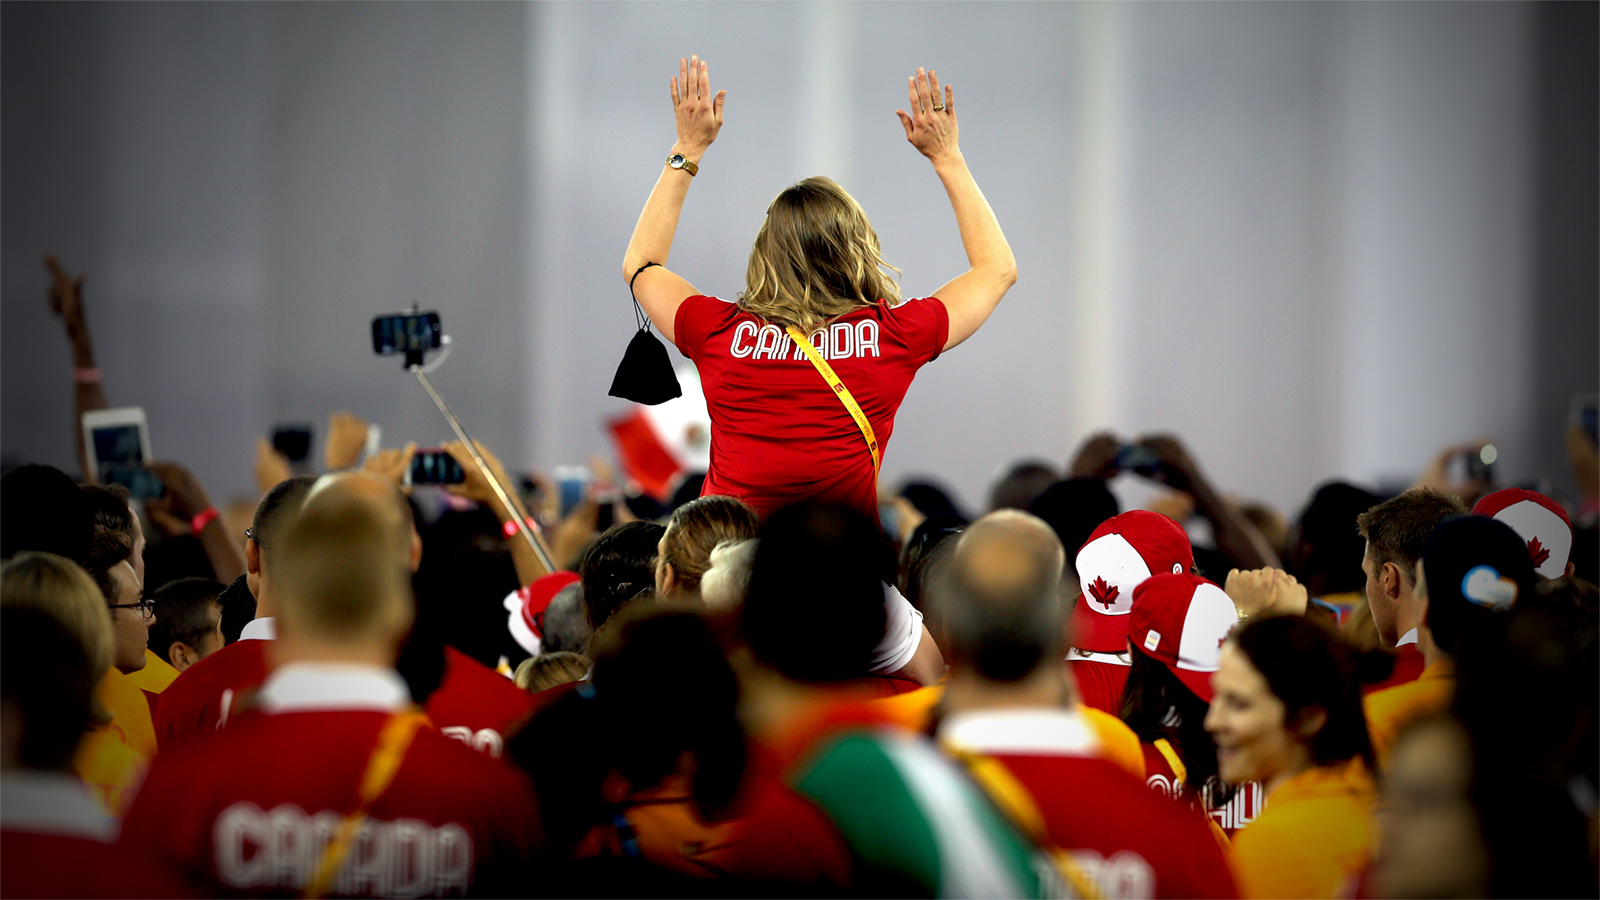 Canadian supporter cheering